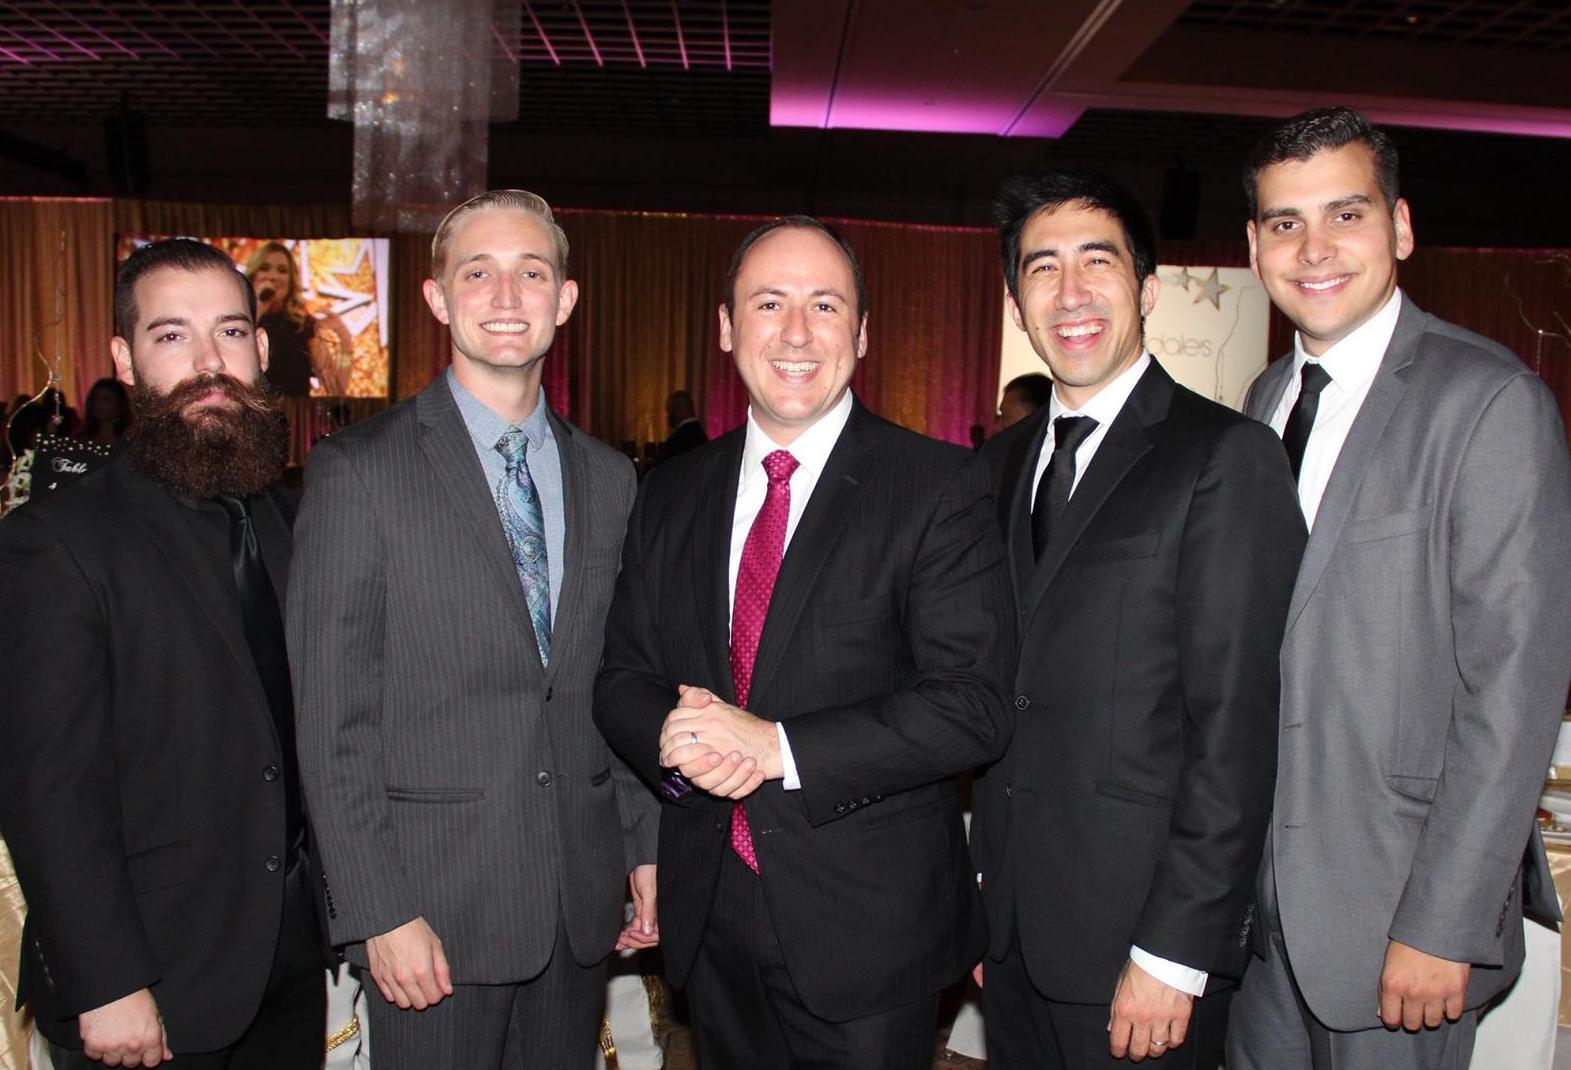 Orlando magicians of See Magic Live perform annually at the Runway to Hope fundraiser, fighting childhood cancer.